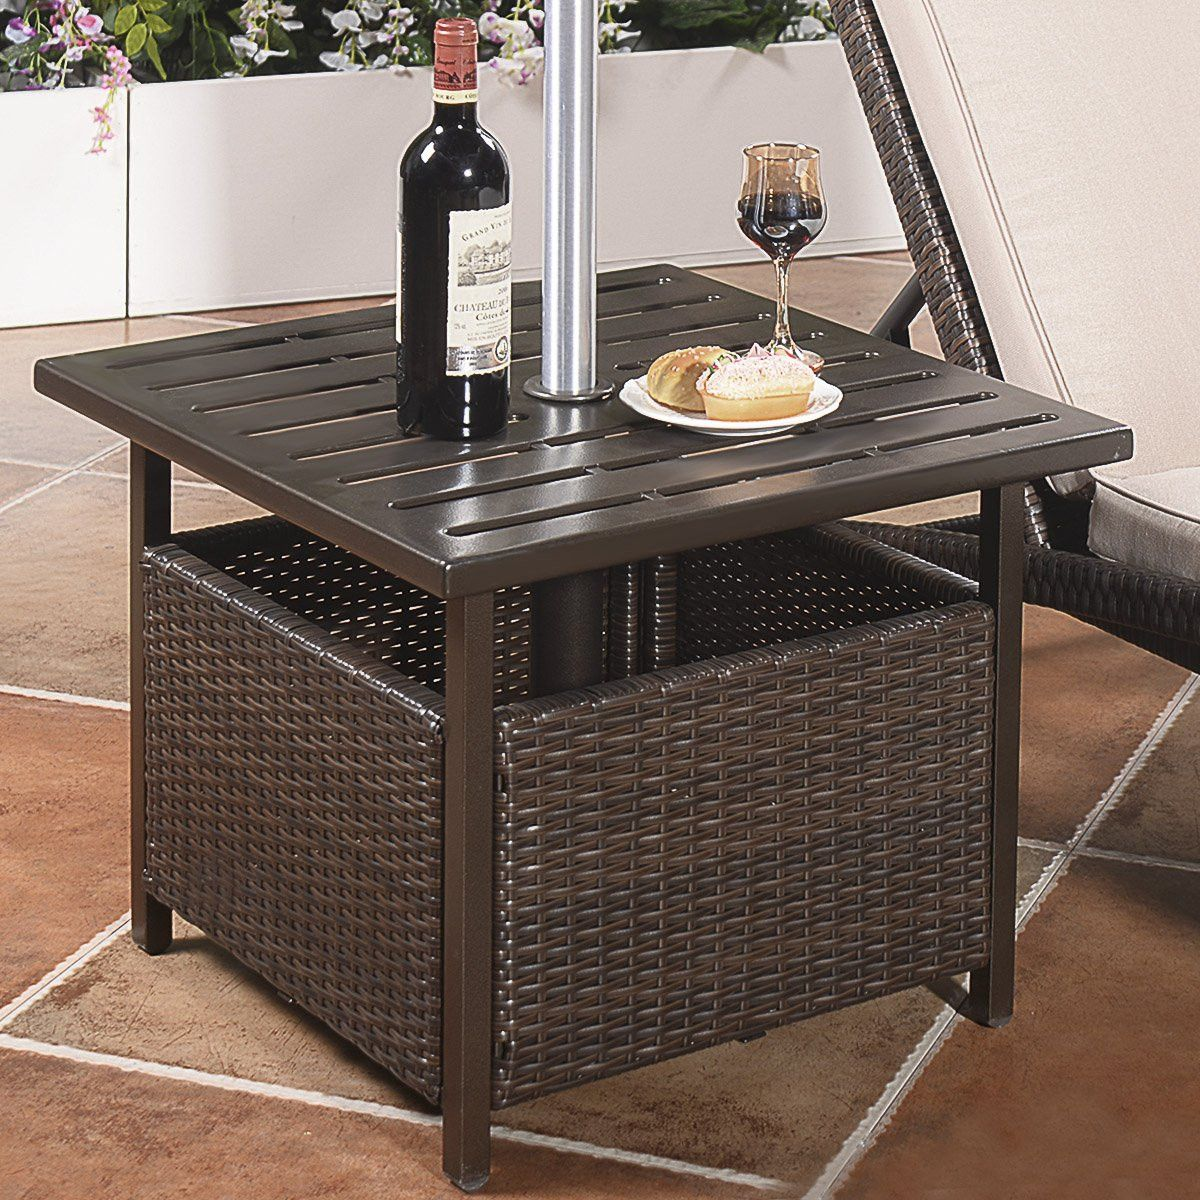 Our Brown Rattan Side Table Is Made Of High Quality Pe Material Which Will Be Lightweight And Eco Friendly The Also Uv Resistant